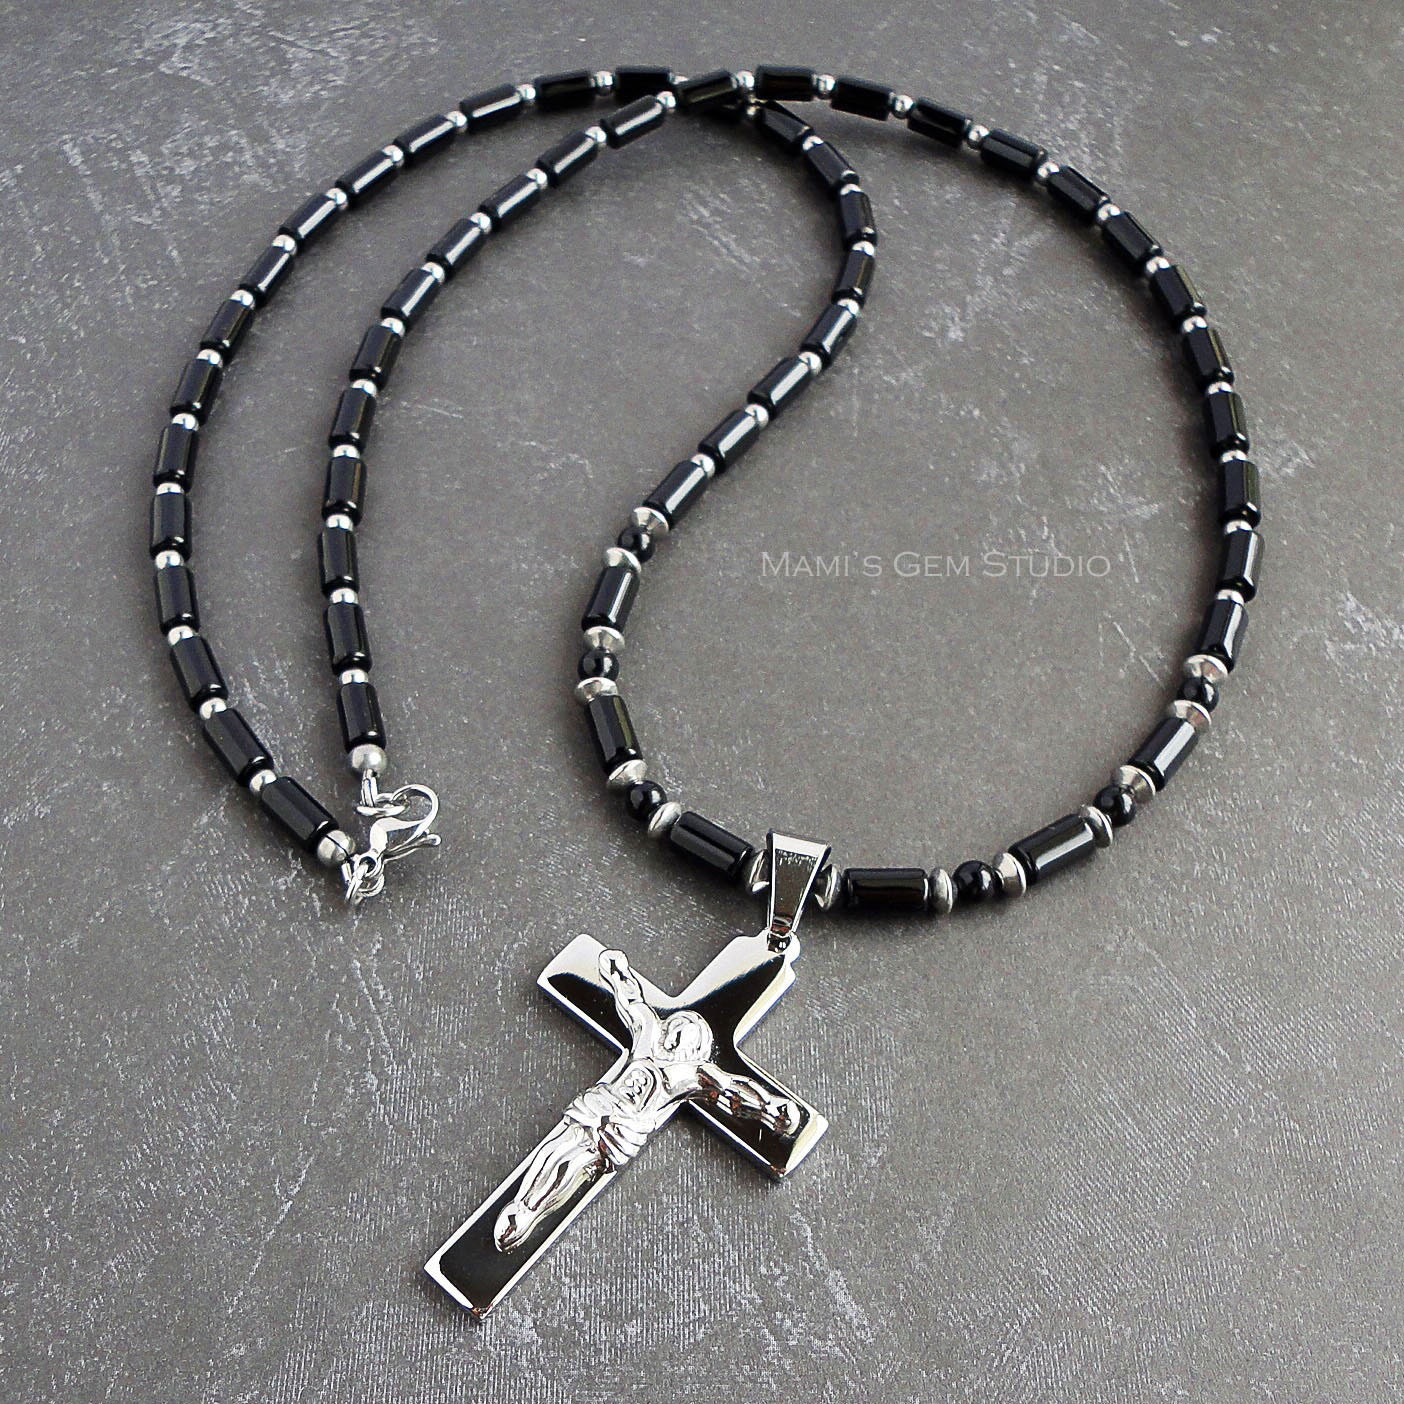 necklaces jewellers sento bead black murphy ti jewellery shop necklace onyx of ladies kilkenny